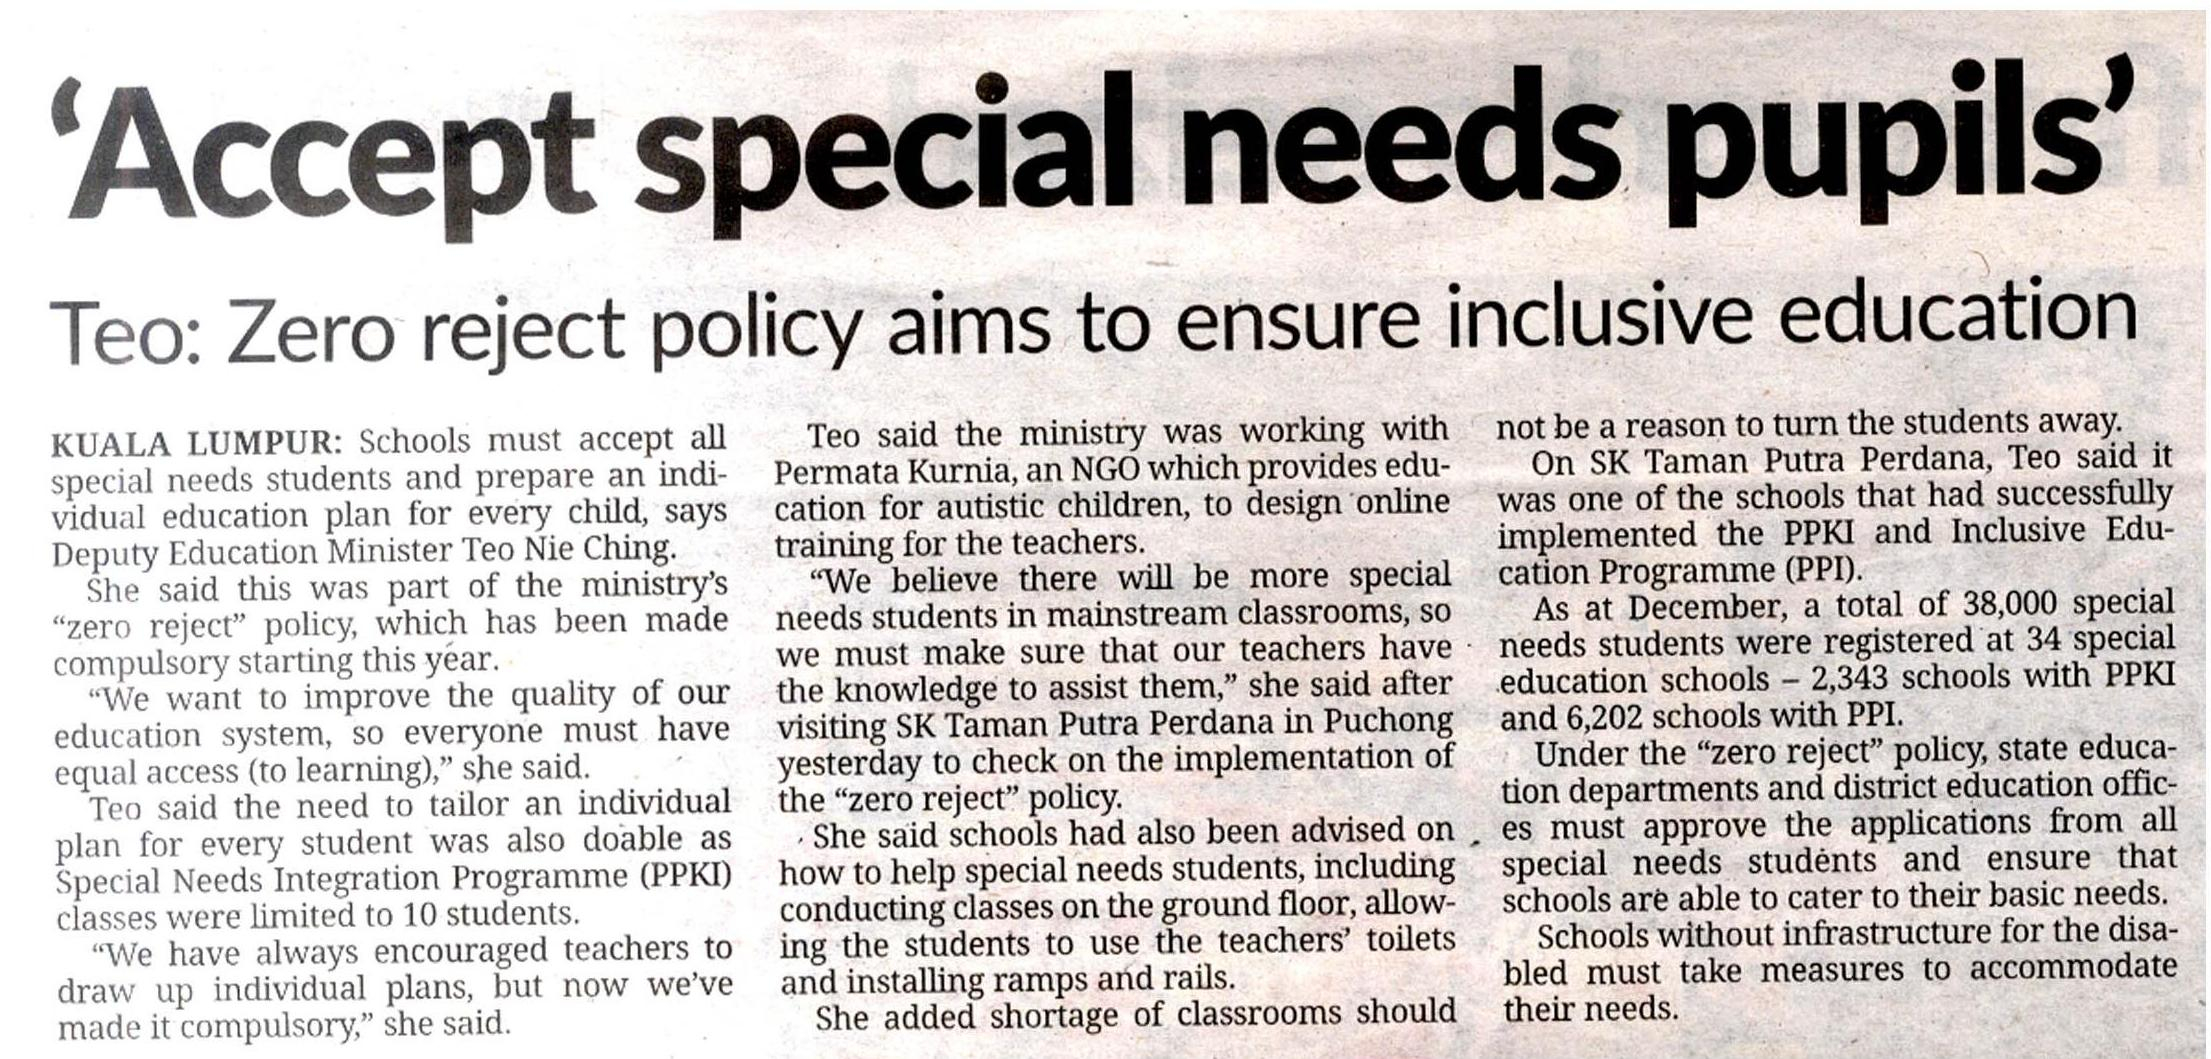 Accept special needs pupils